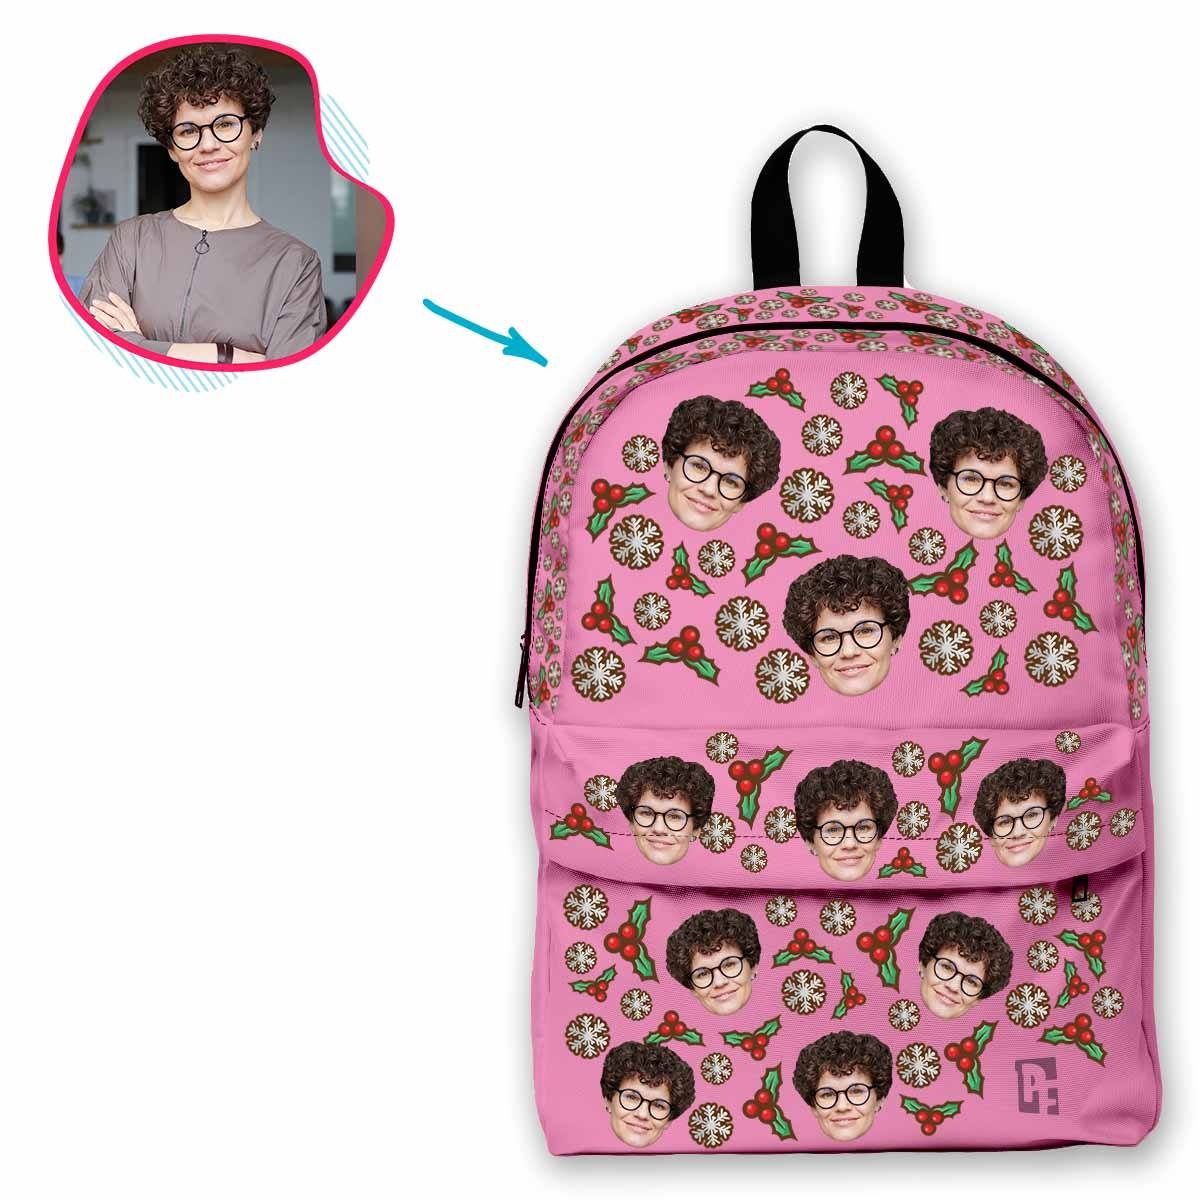 pink Mistletoe classic backpack personalized with photo of face printed on it